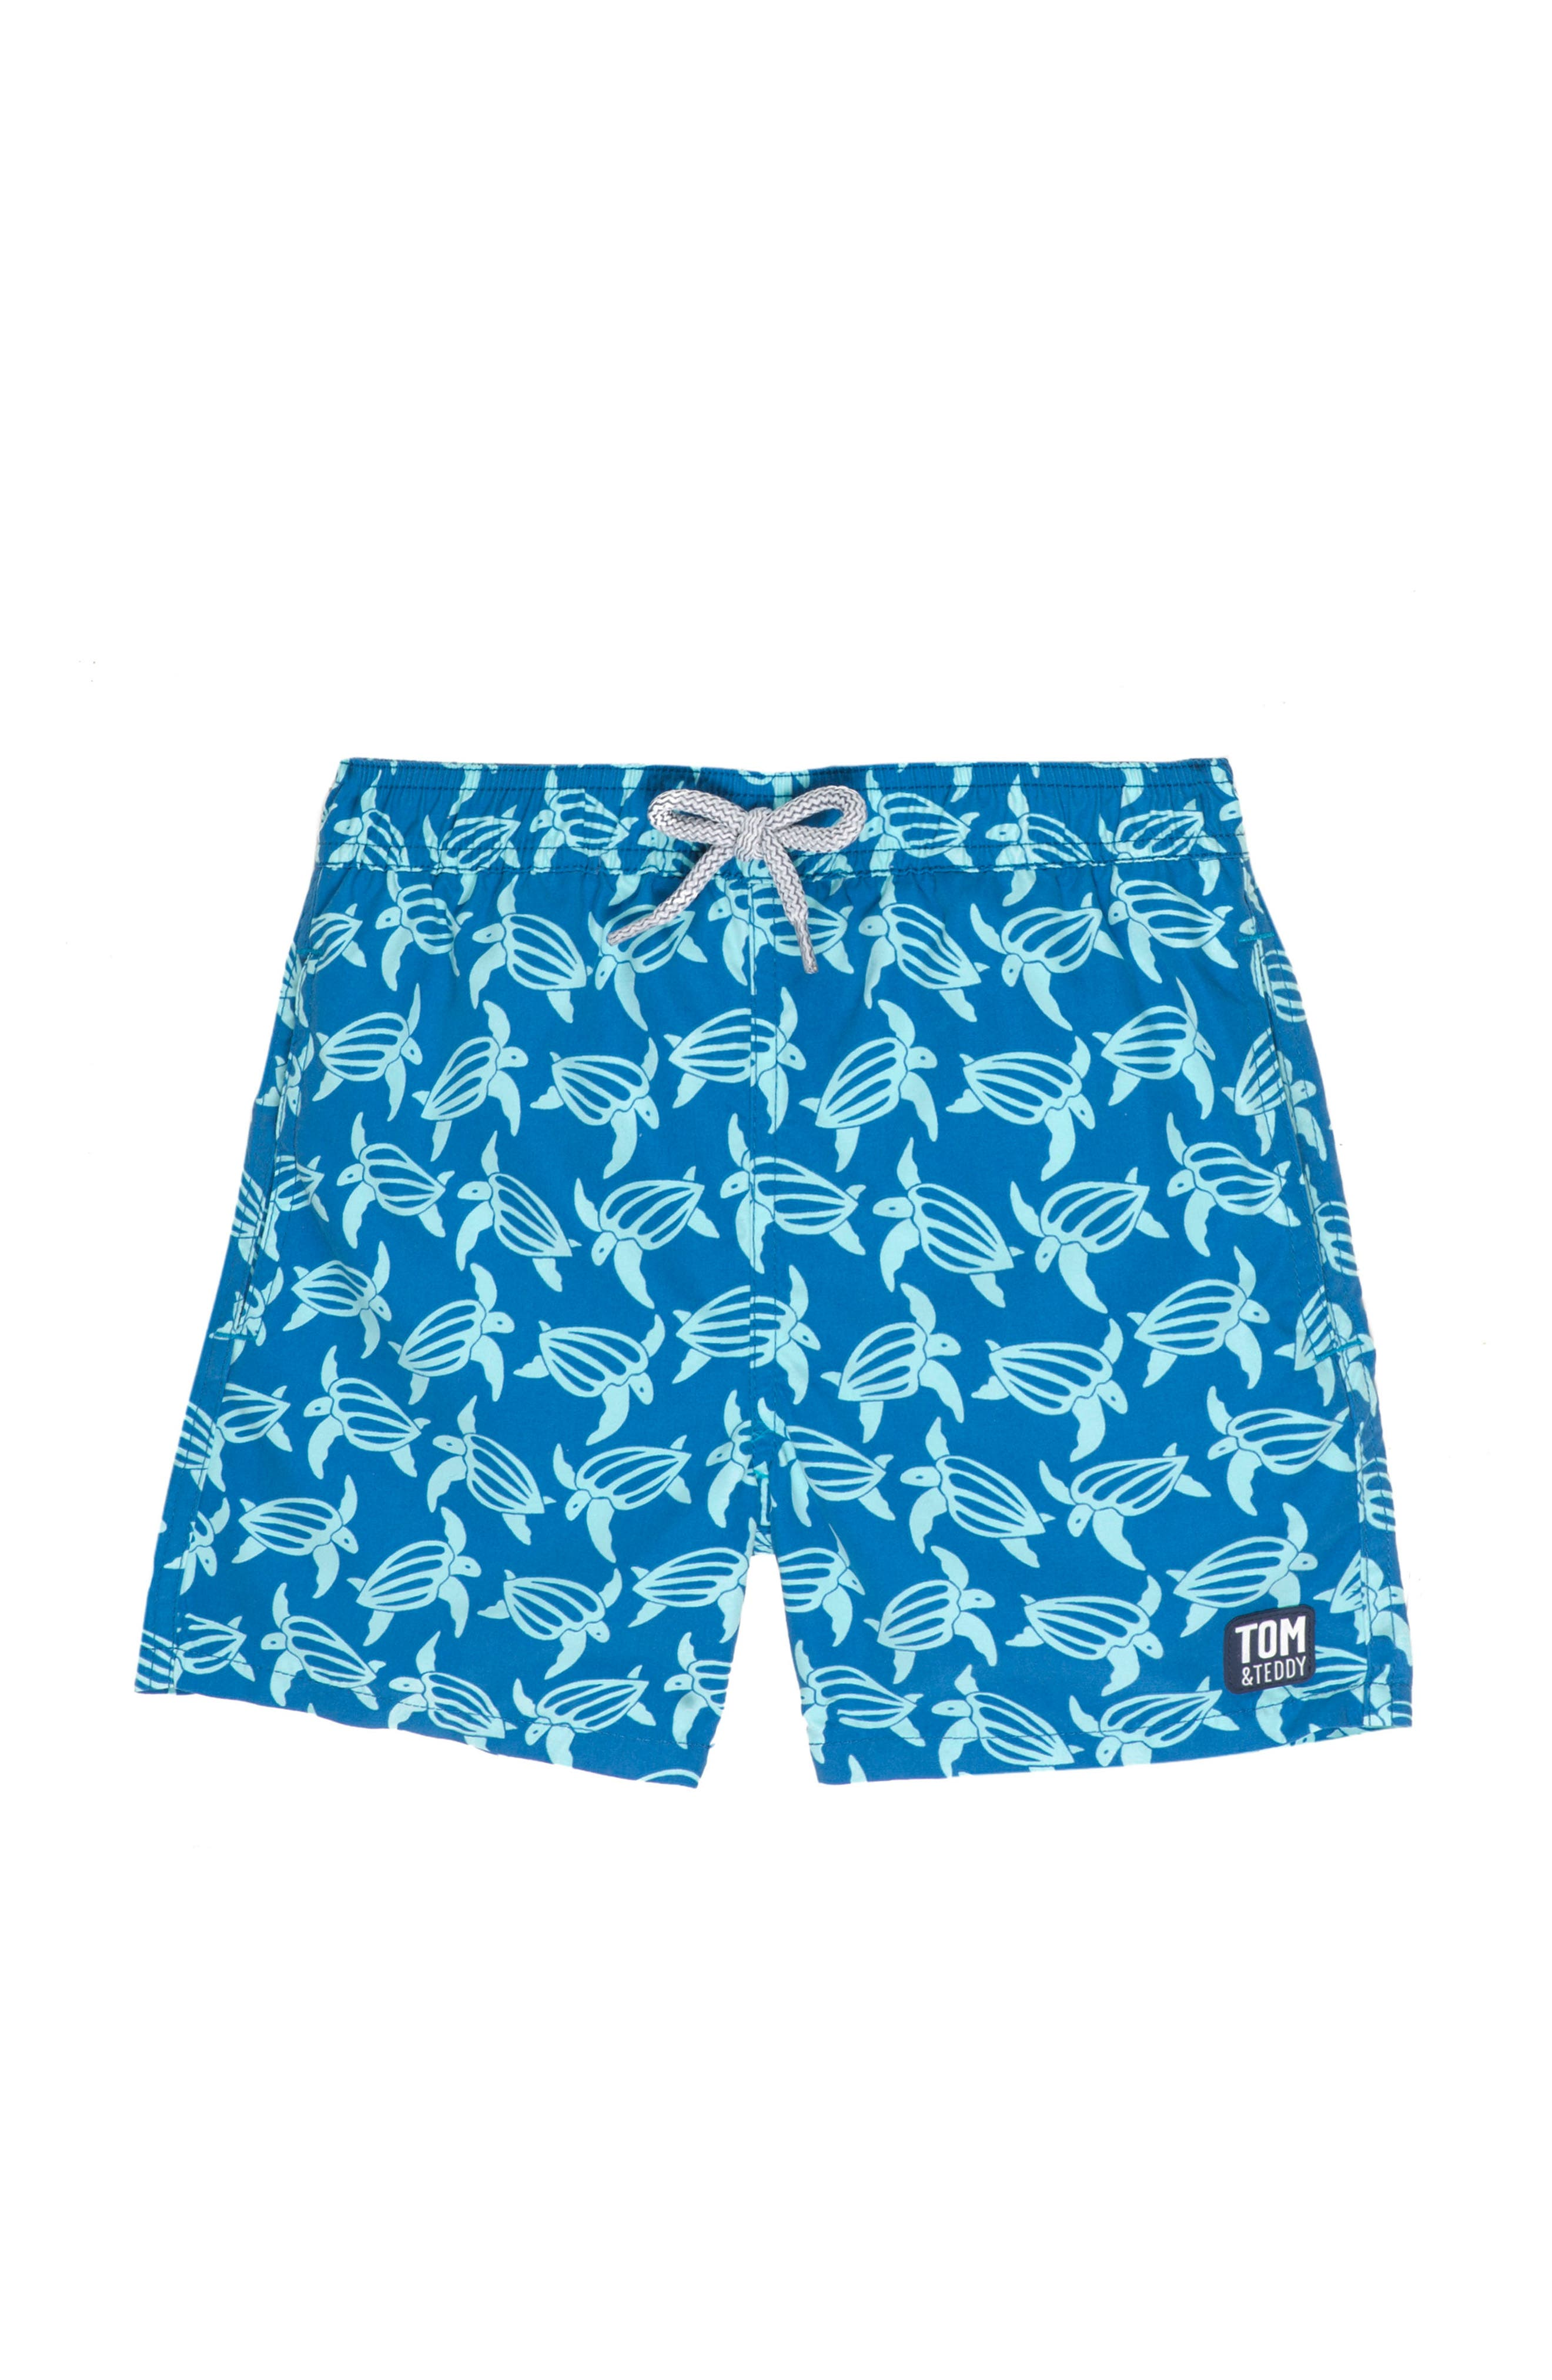 Turtle Swim Trunks,                             Main thumbnail 1, color,                             Mid Blue/ Sky